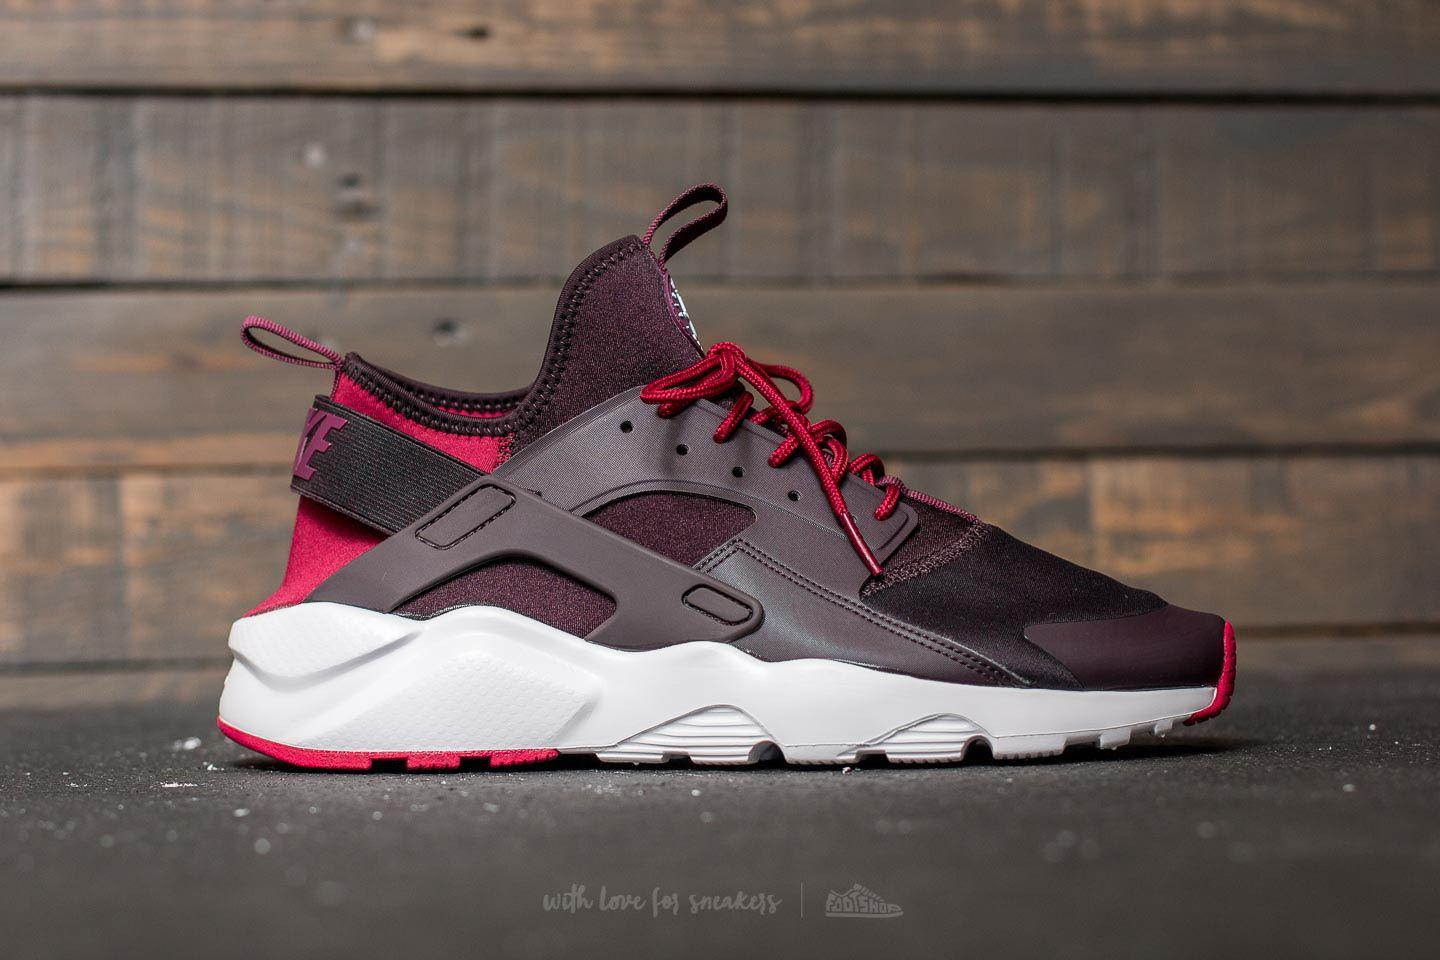 95f35d1ace3b7 Lyst - Nike Air Huarache Run Ultra Port Wine  Bordeaux-noble Red for Men